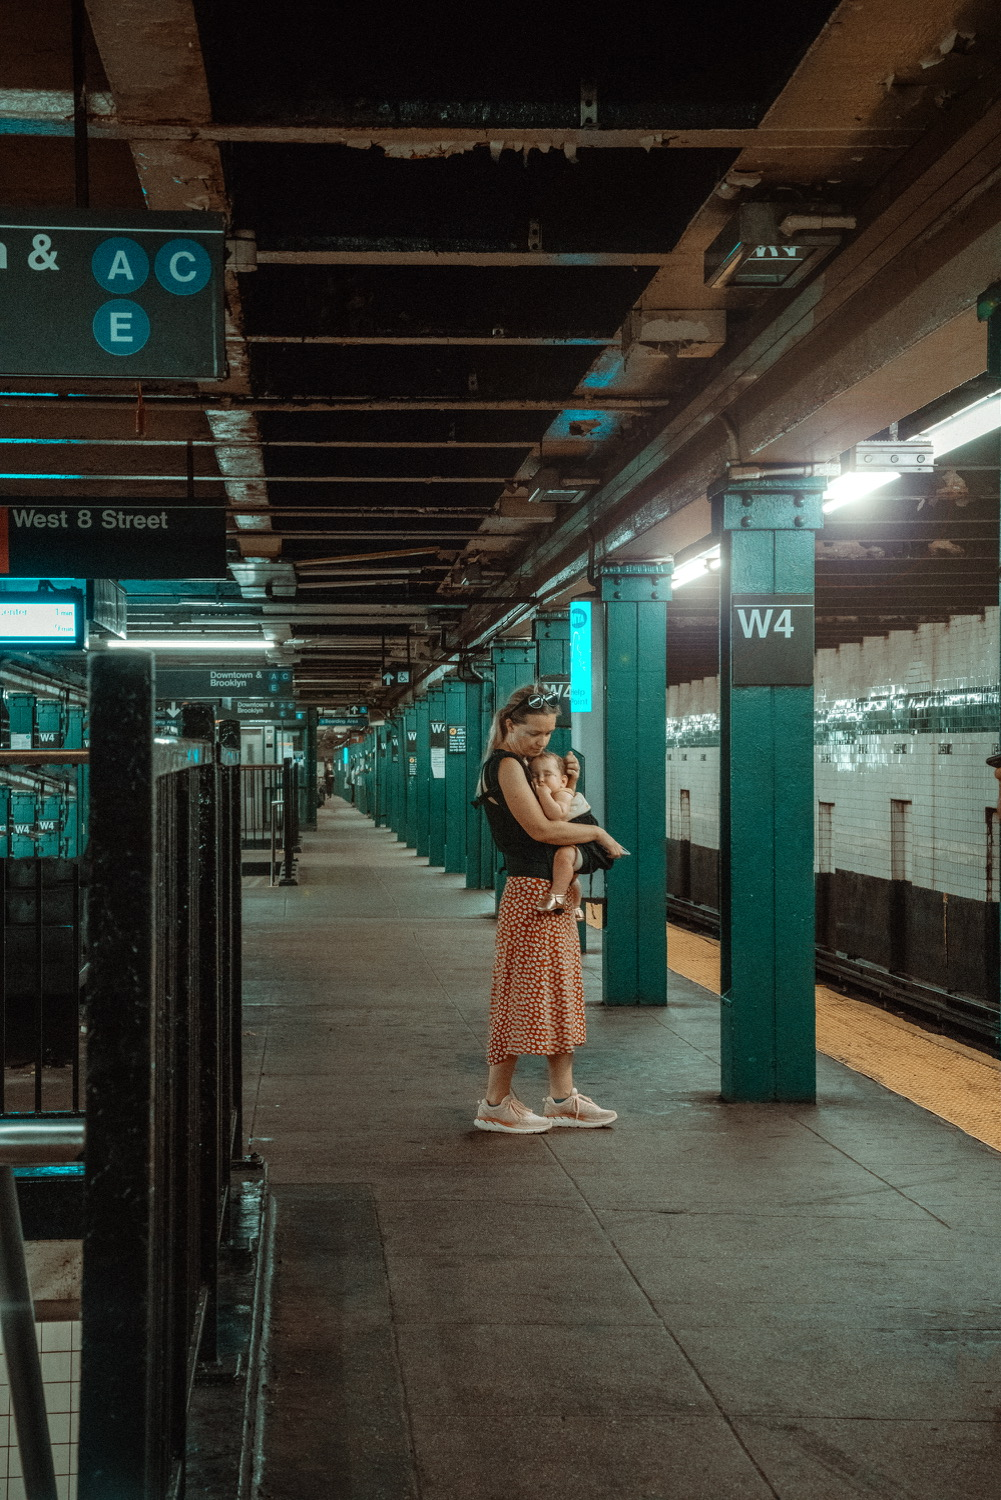 Woman holding a baby on a subway platform